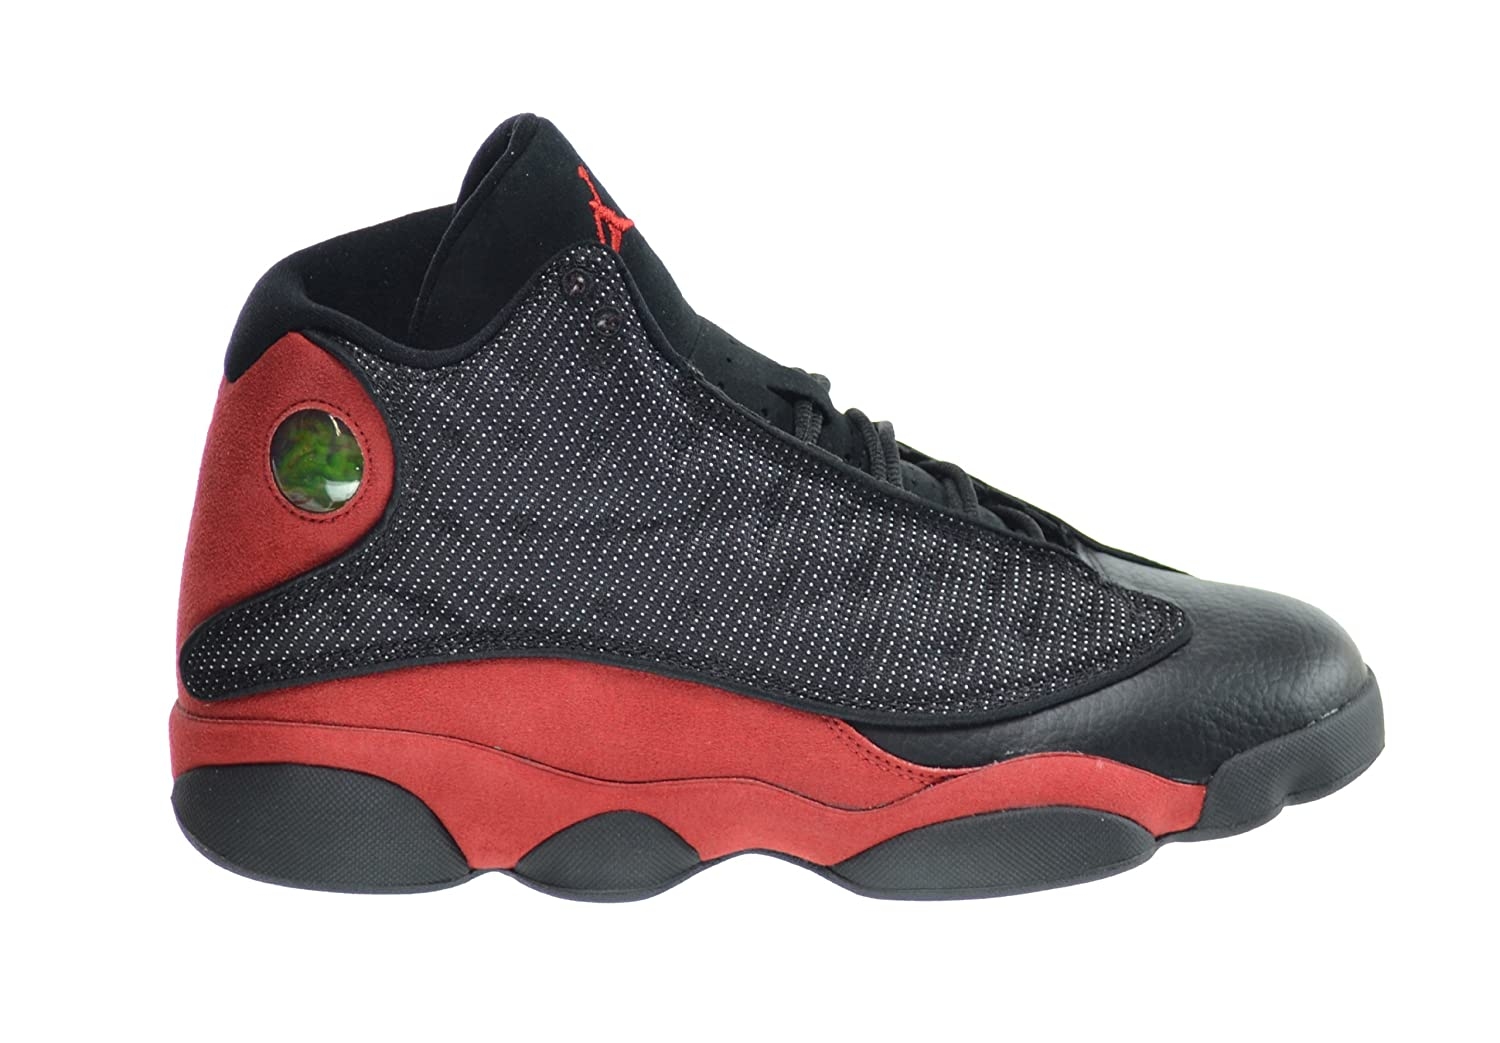 buy popular b6f21 7b8f8 Amazon.com   Jordan Air 13 Retro Men s Basketball Shoes Black Varsity Red-White  414571-010 (8.5 D(M) US)   Basketball